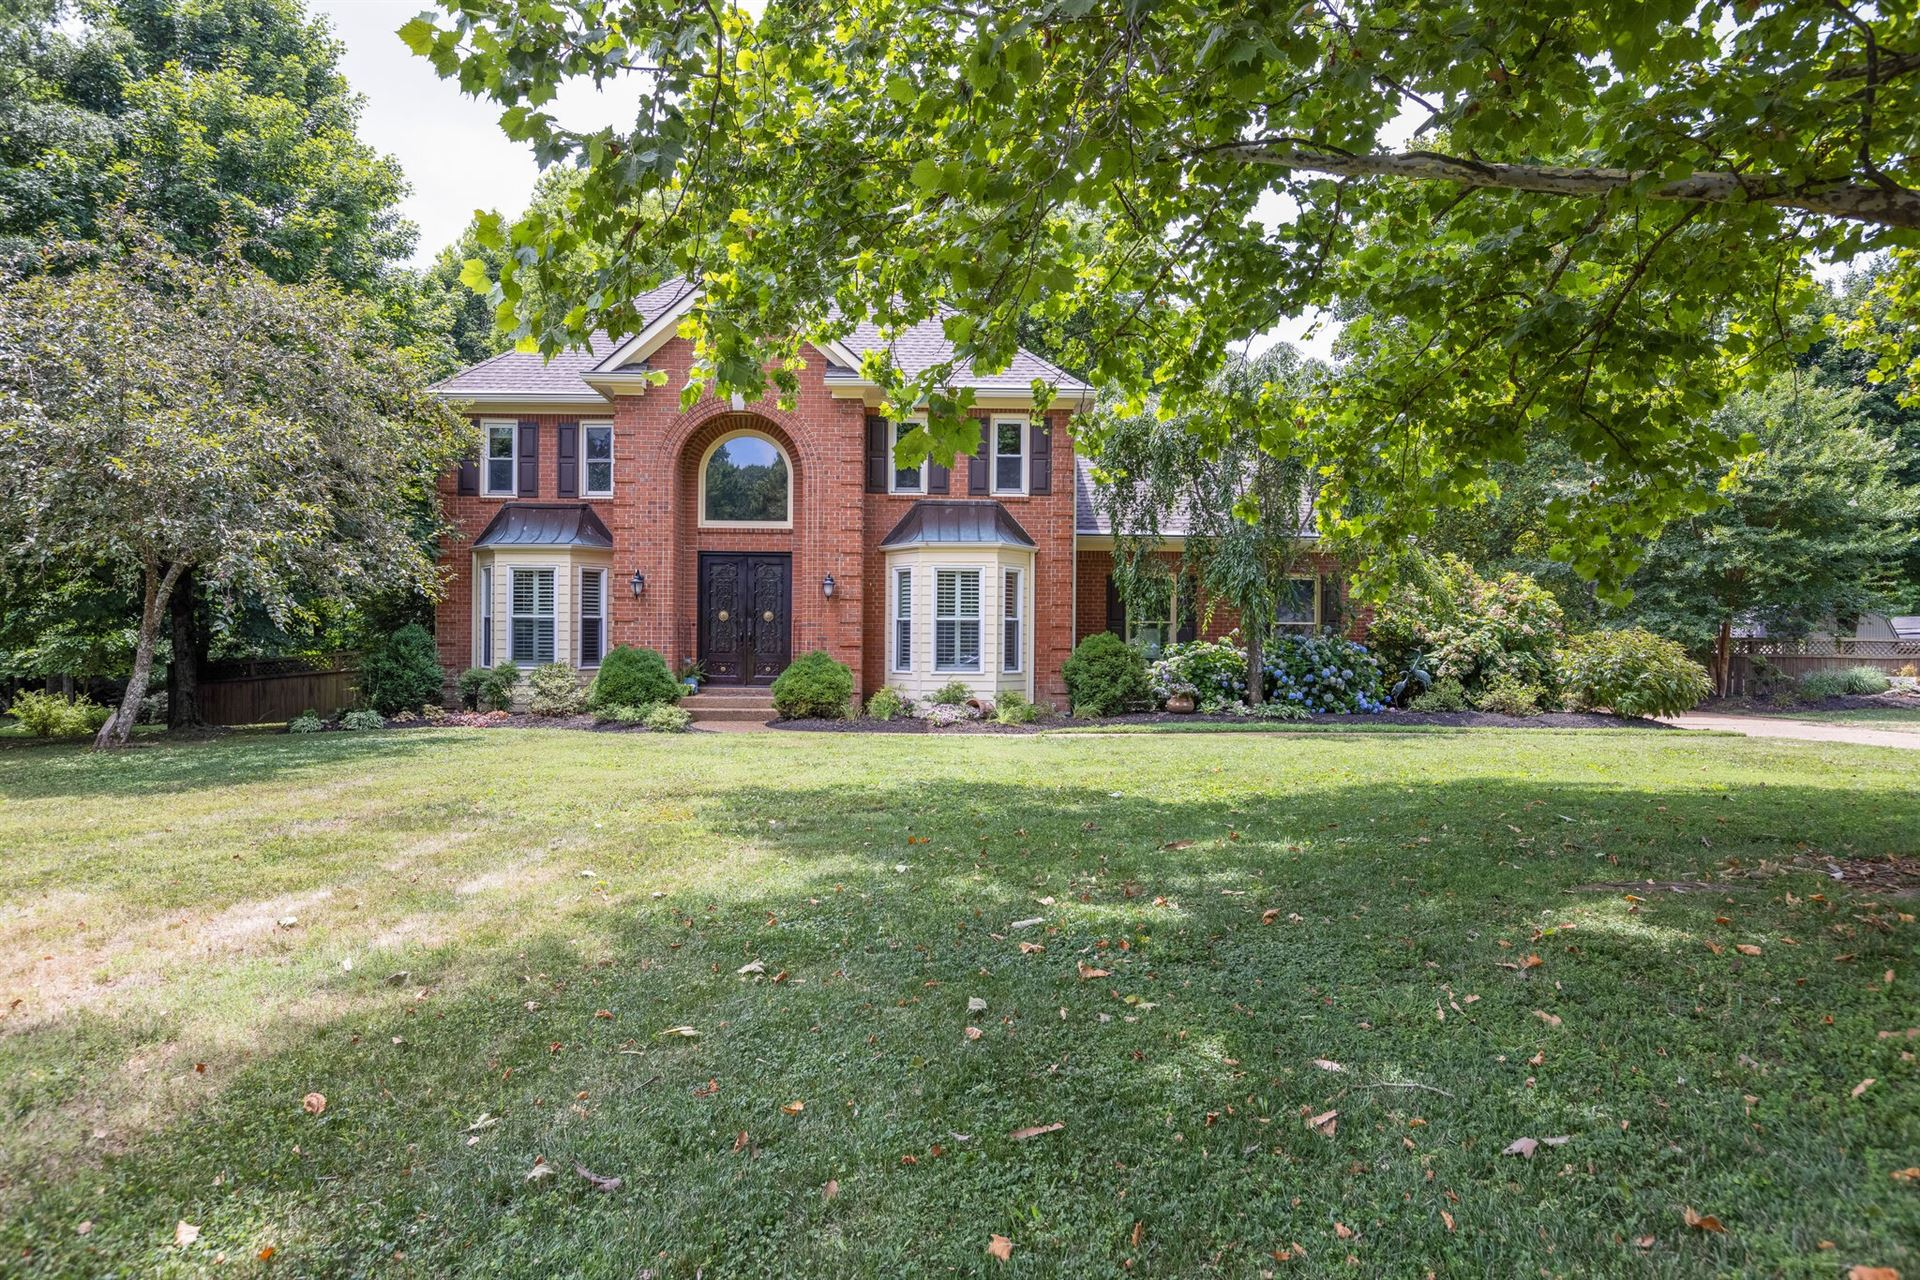 1405 Glenview Dr, Brentwood, TN 37027 - MLS#: 2271026